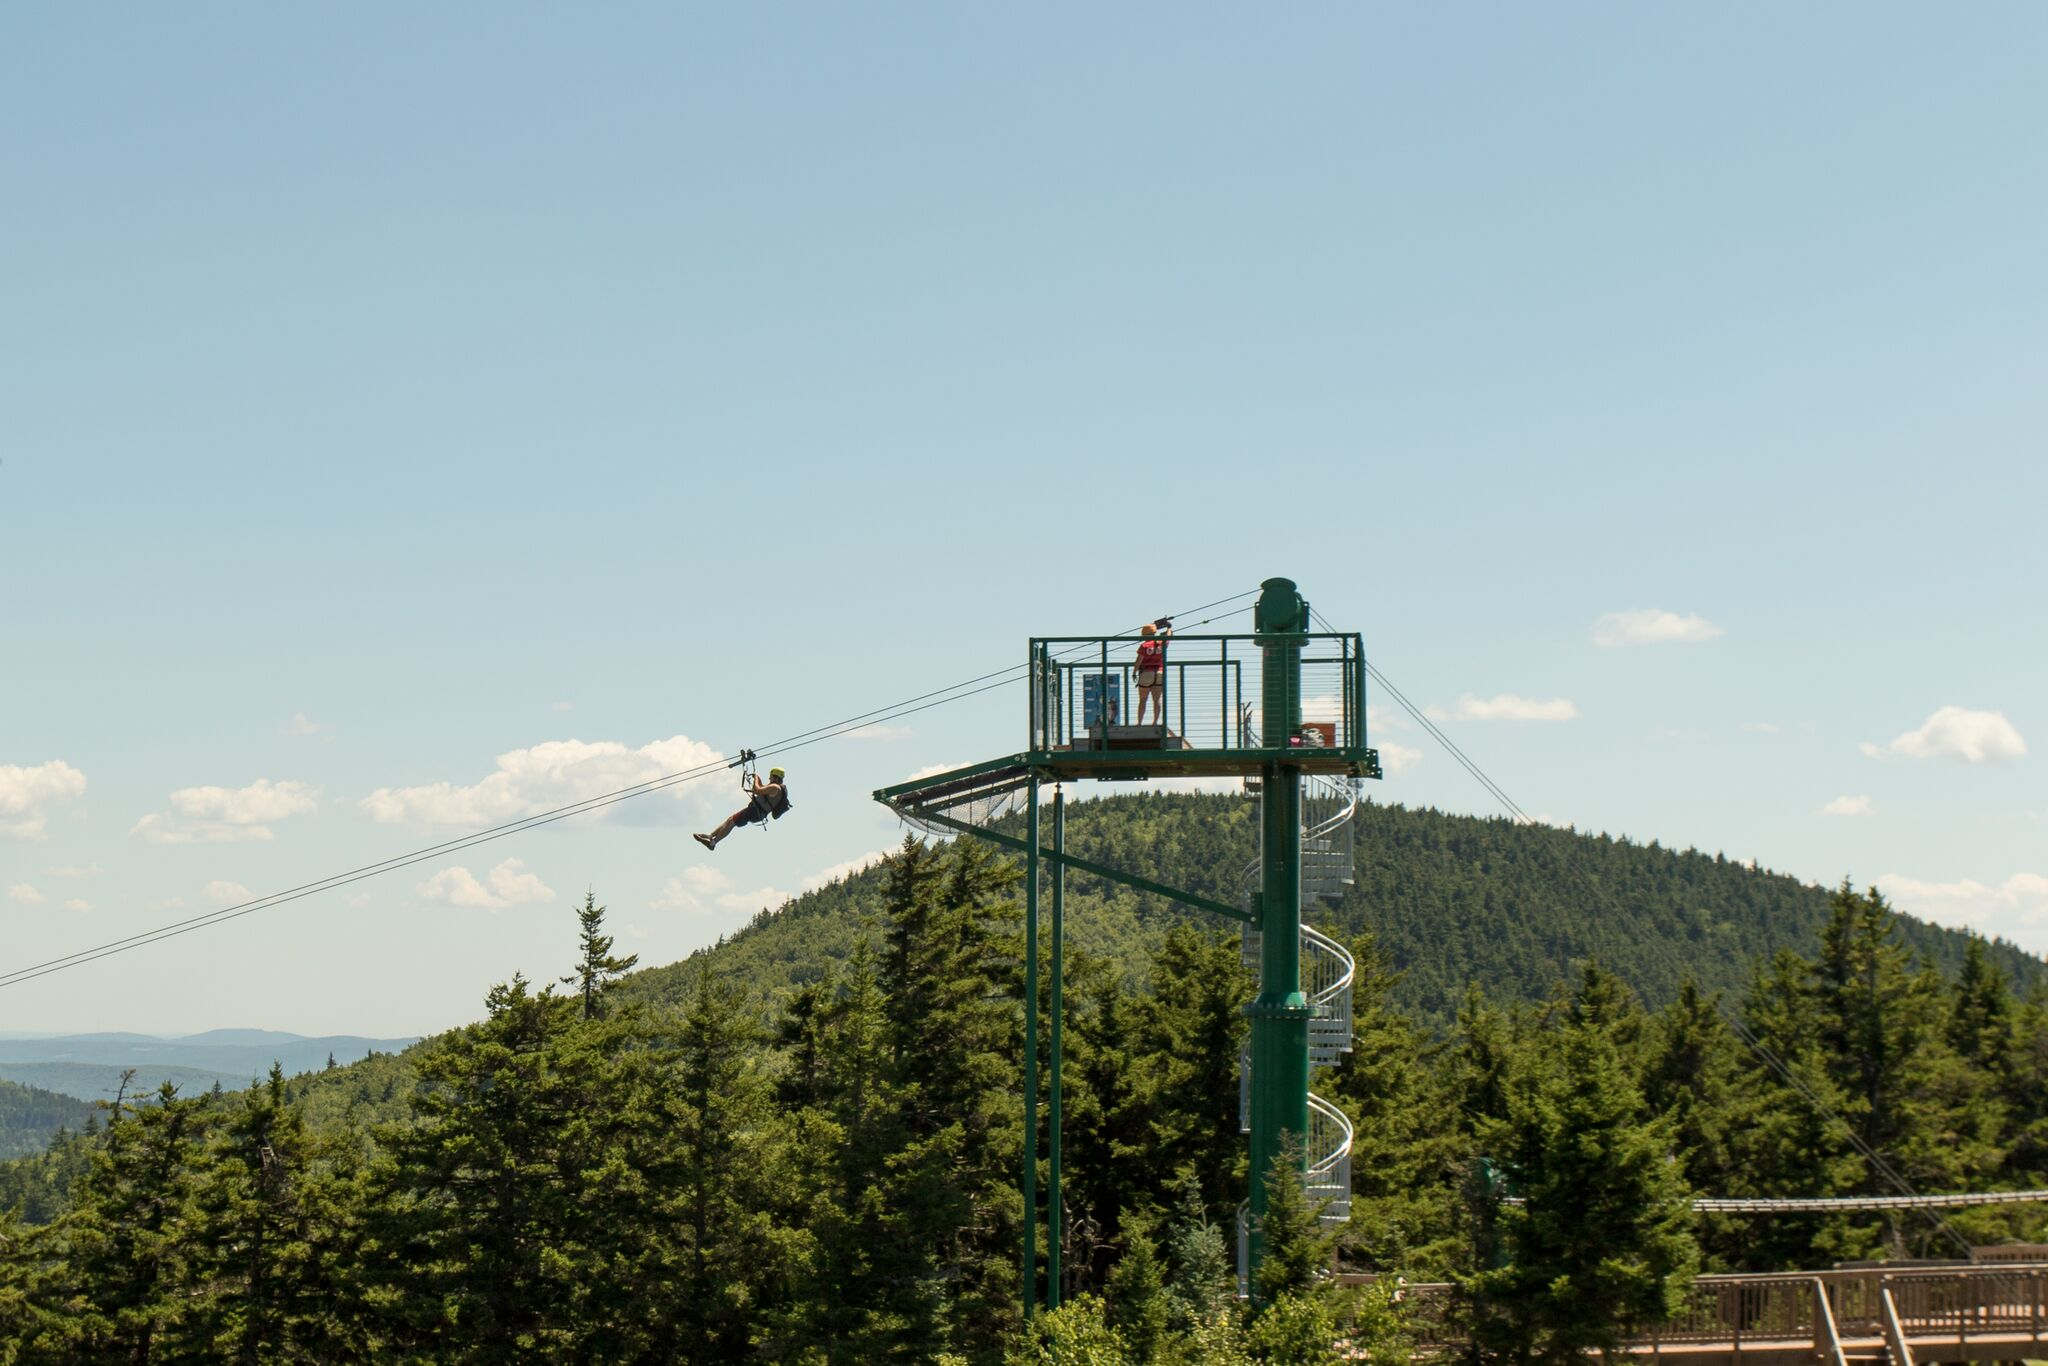 Zip Line Tours - Soar above the trees from peak to peak, and peak to base, traveling over 1.6 miles on one of the longest zip line canopy tours in the continental United States! It is fast, fun and exhilarating. This 2+ hour adventure is for thrill seekers and nature lovers alike.